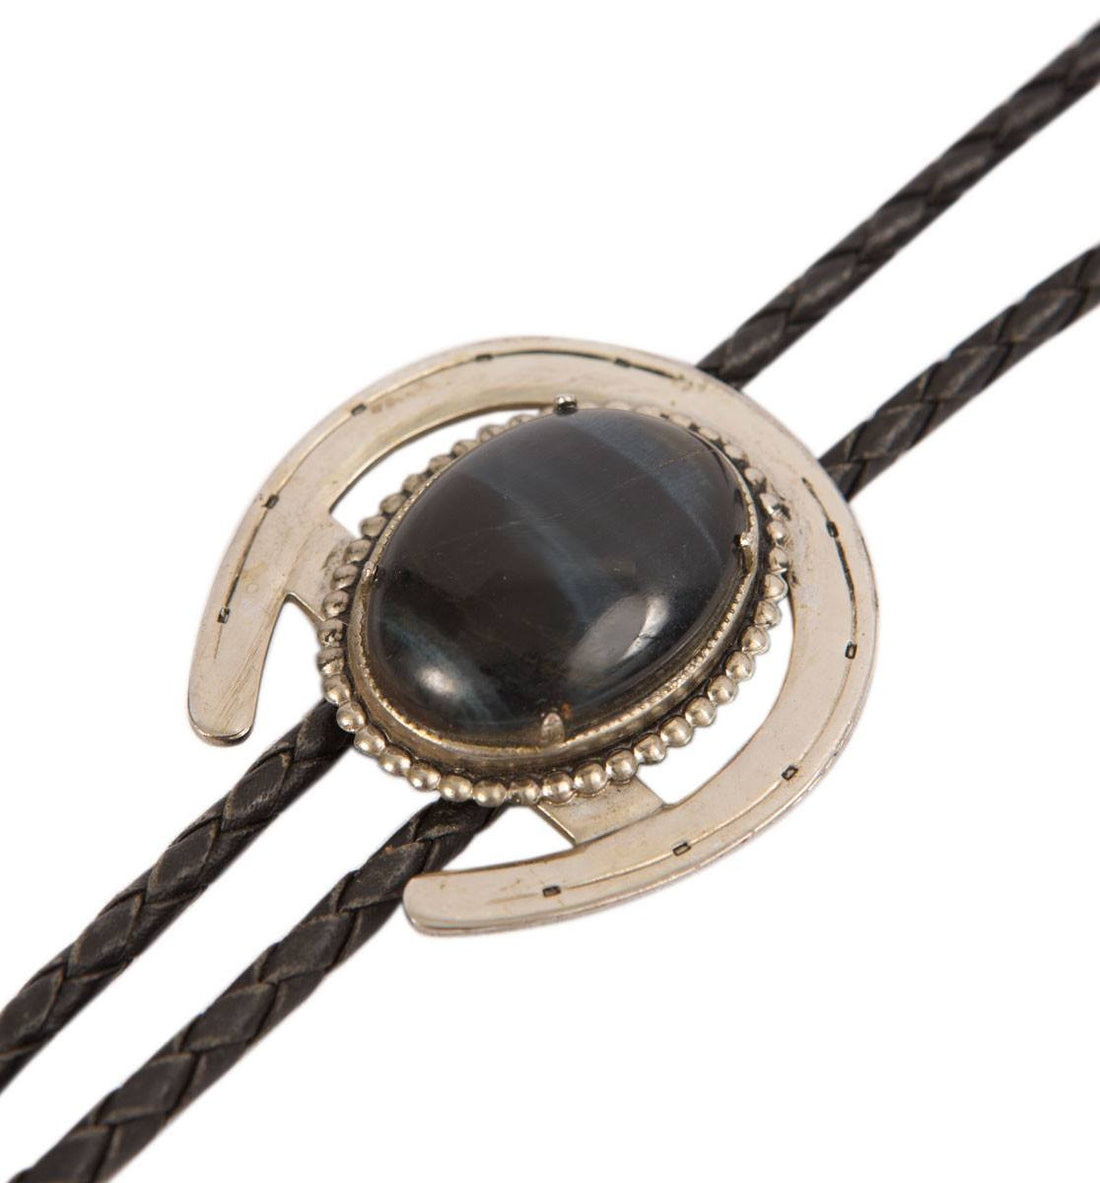 Vintage Horseshoe Black Bolo Tie - Vintage - Iron and Resin